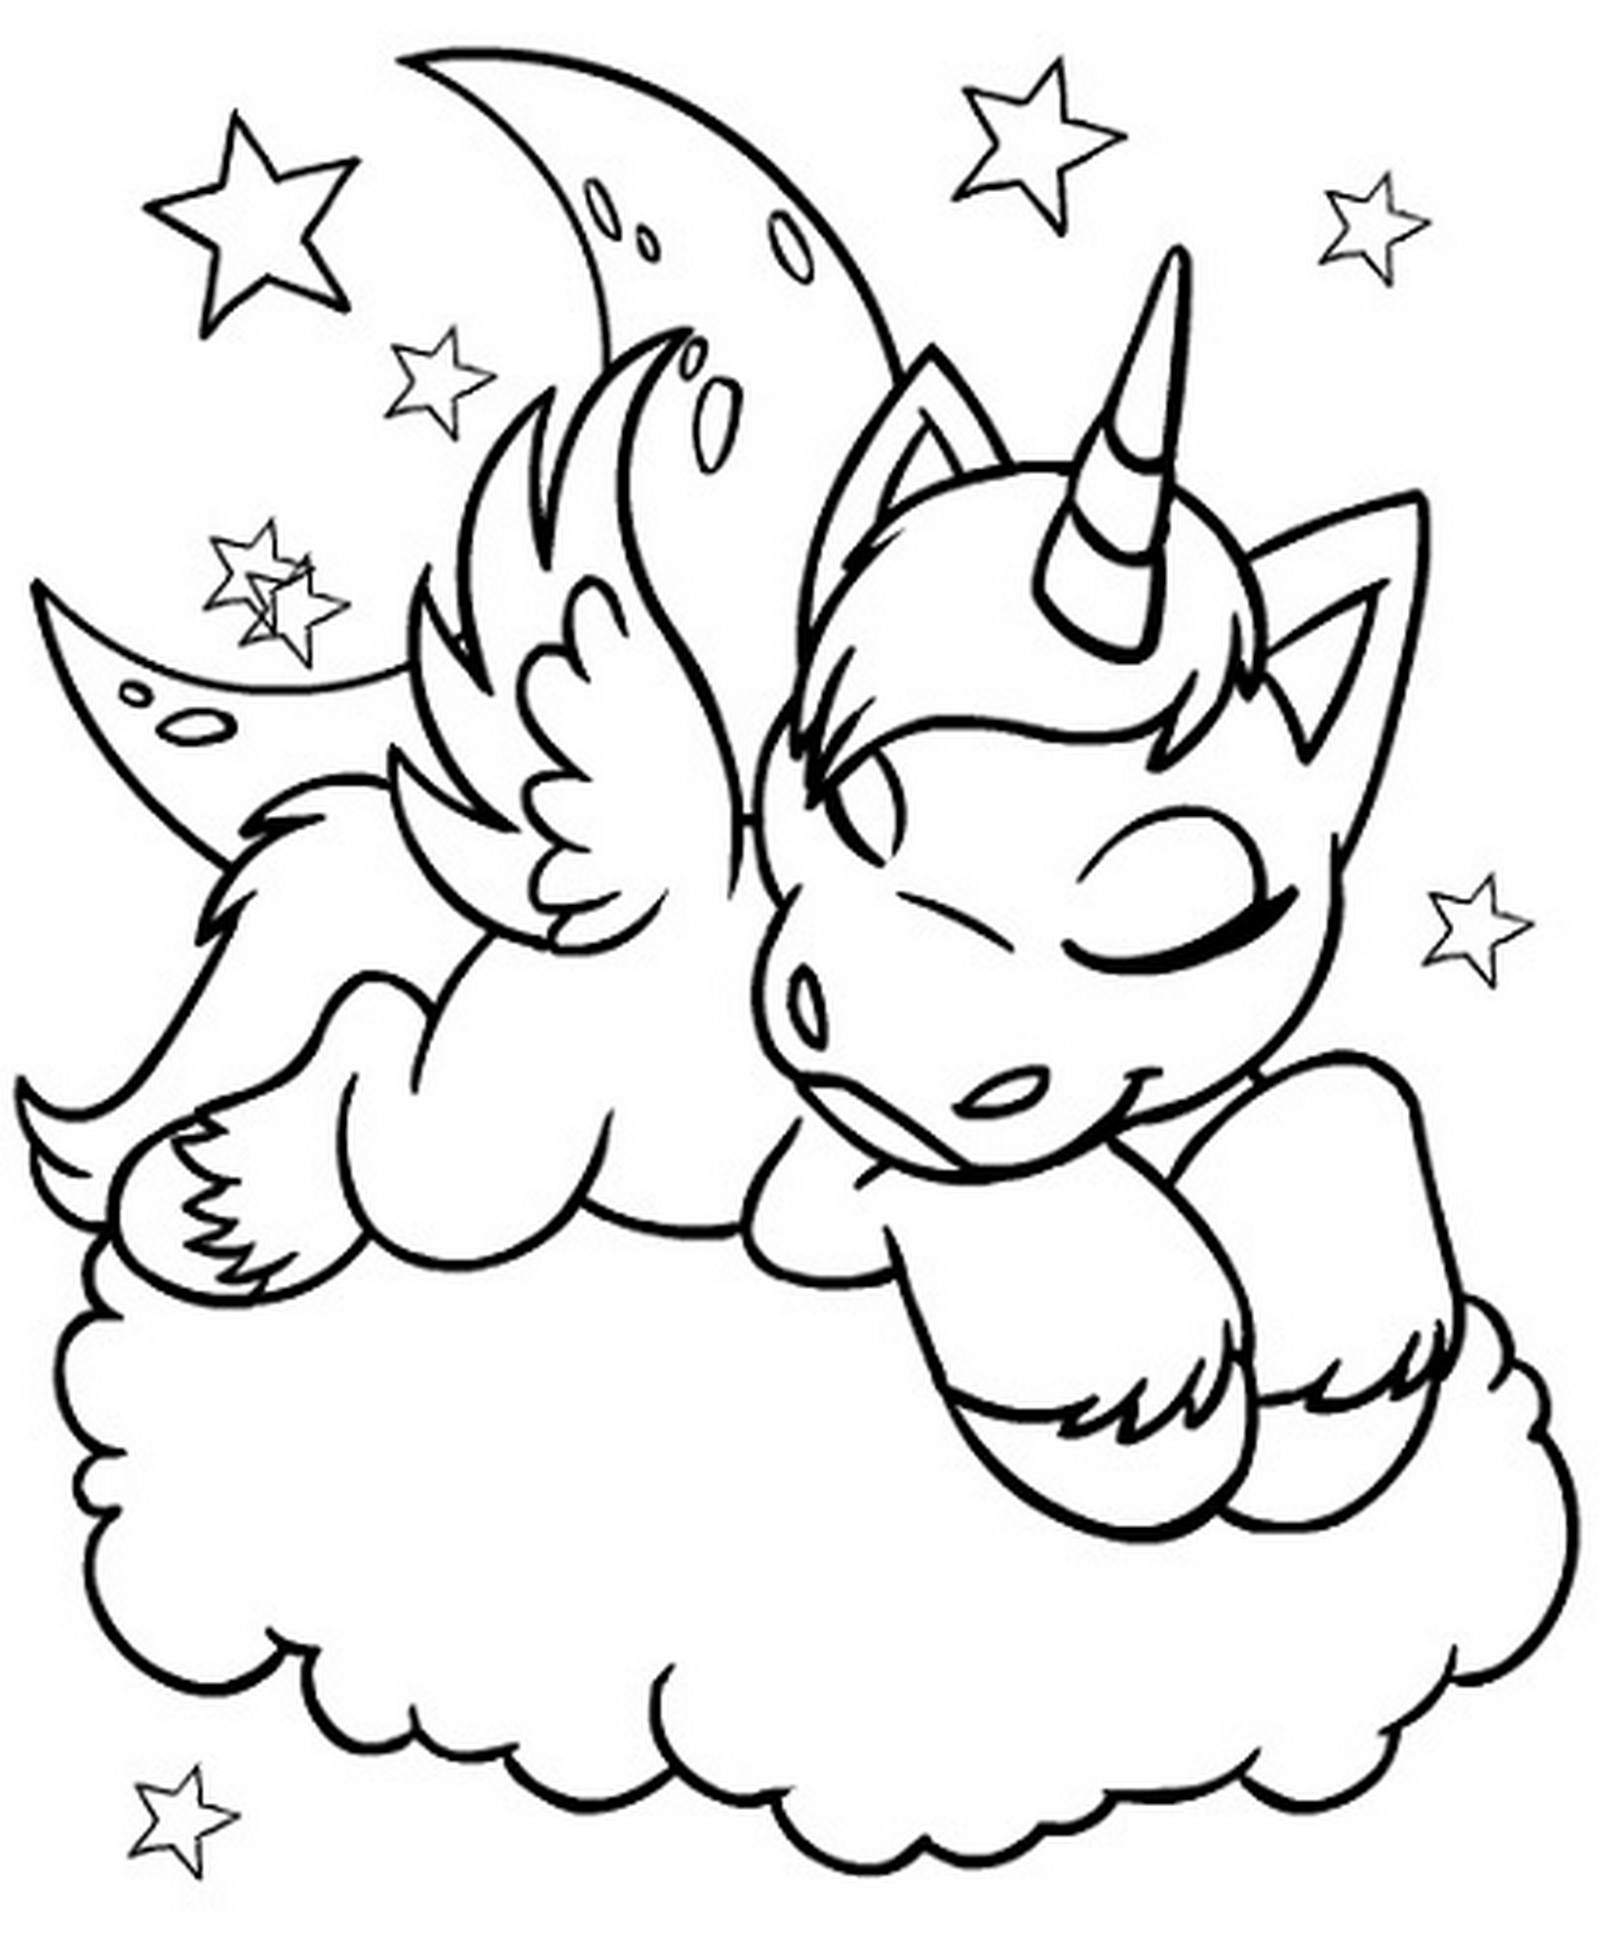 print unicorn coloring sheet unicorn coloring pages to download and print for free coloring print unicorn sheet